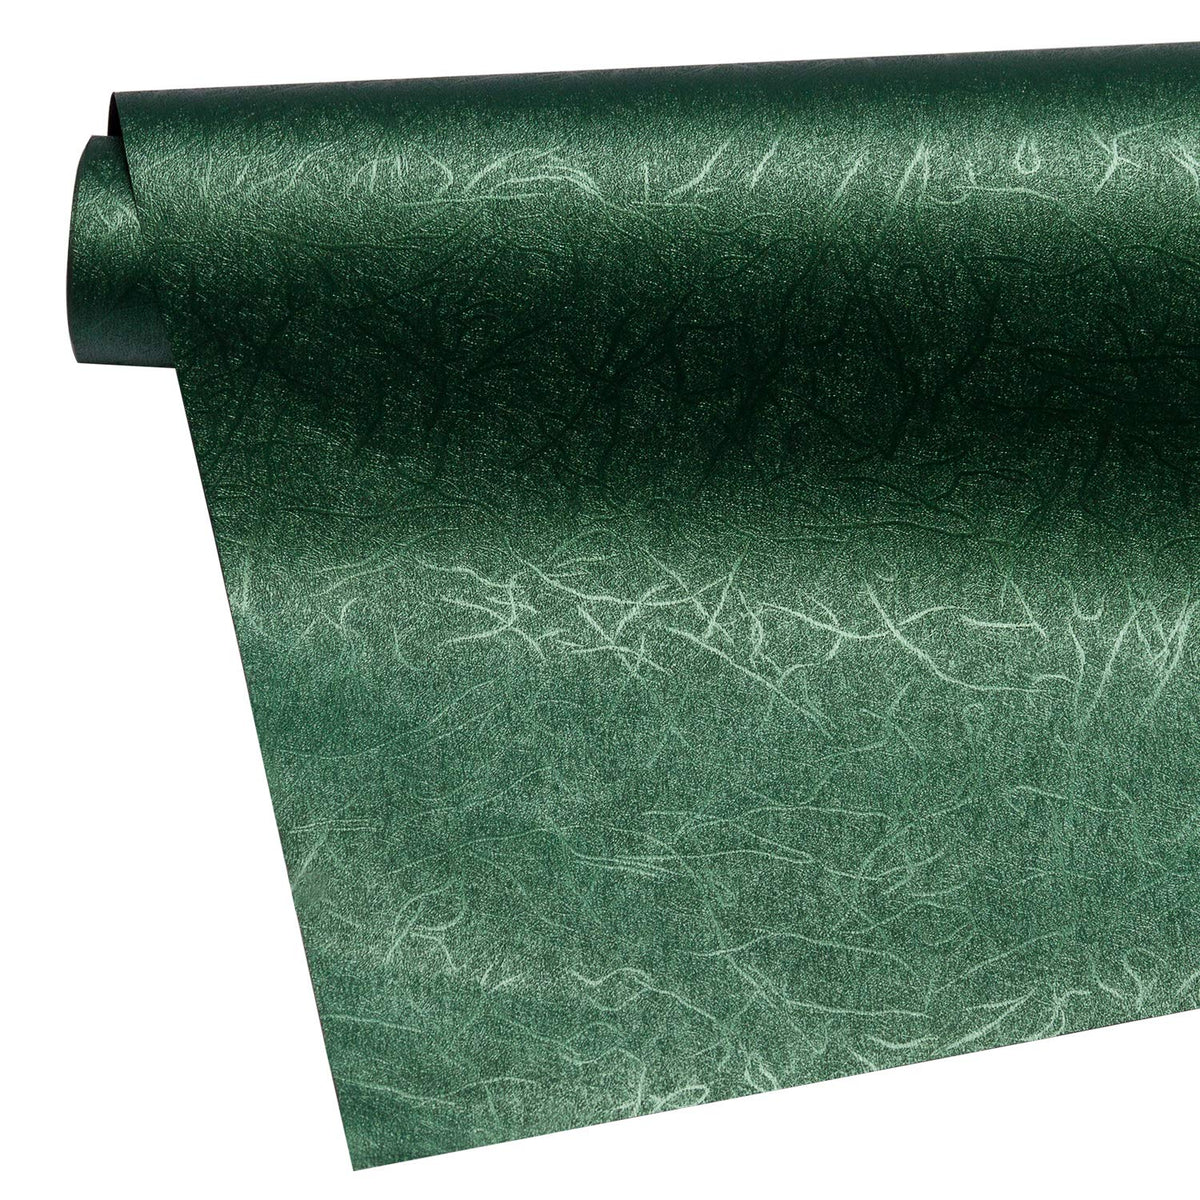 WRAPAHOLIC-Jewelry-Green-Gift-Wrapping-Paper-Dark-Green-Silking-Grain-4